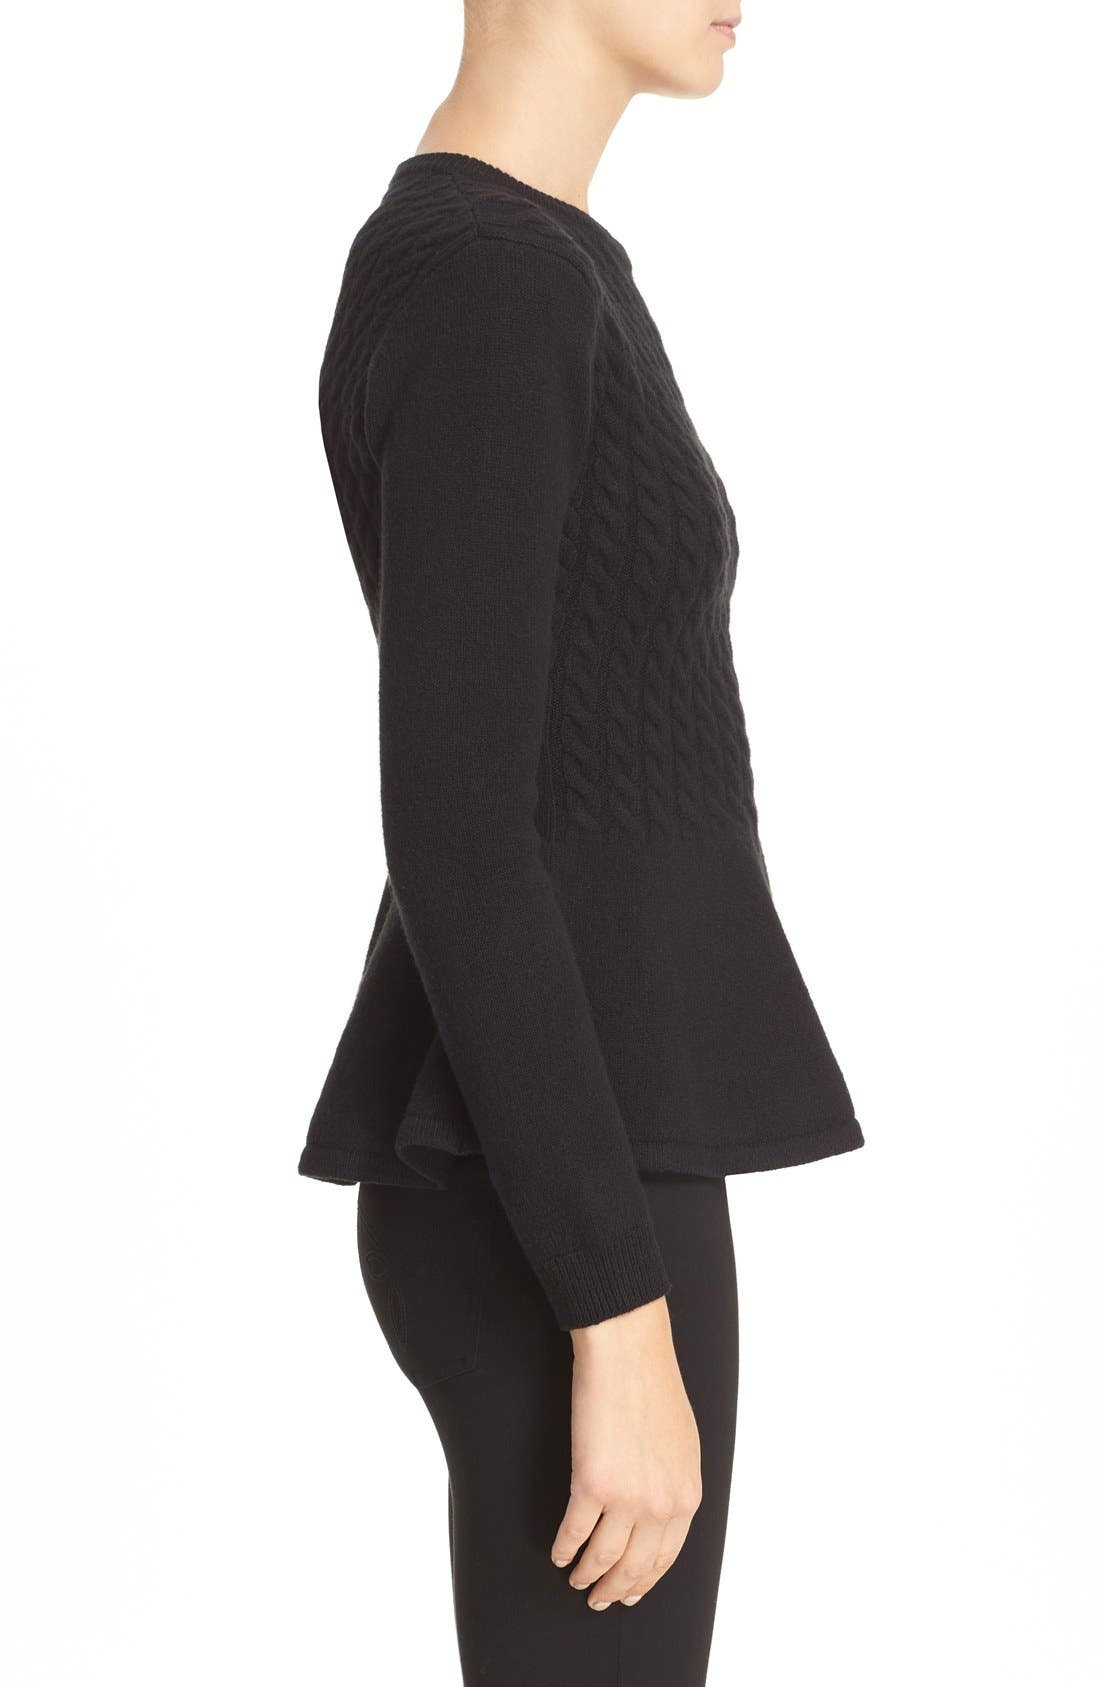 TED BAKER LONDON,                             'Mereda' Cable Knit Peplum Sweater,                             Alternate thumbnail 3, color,                             001